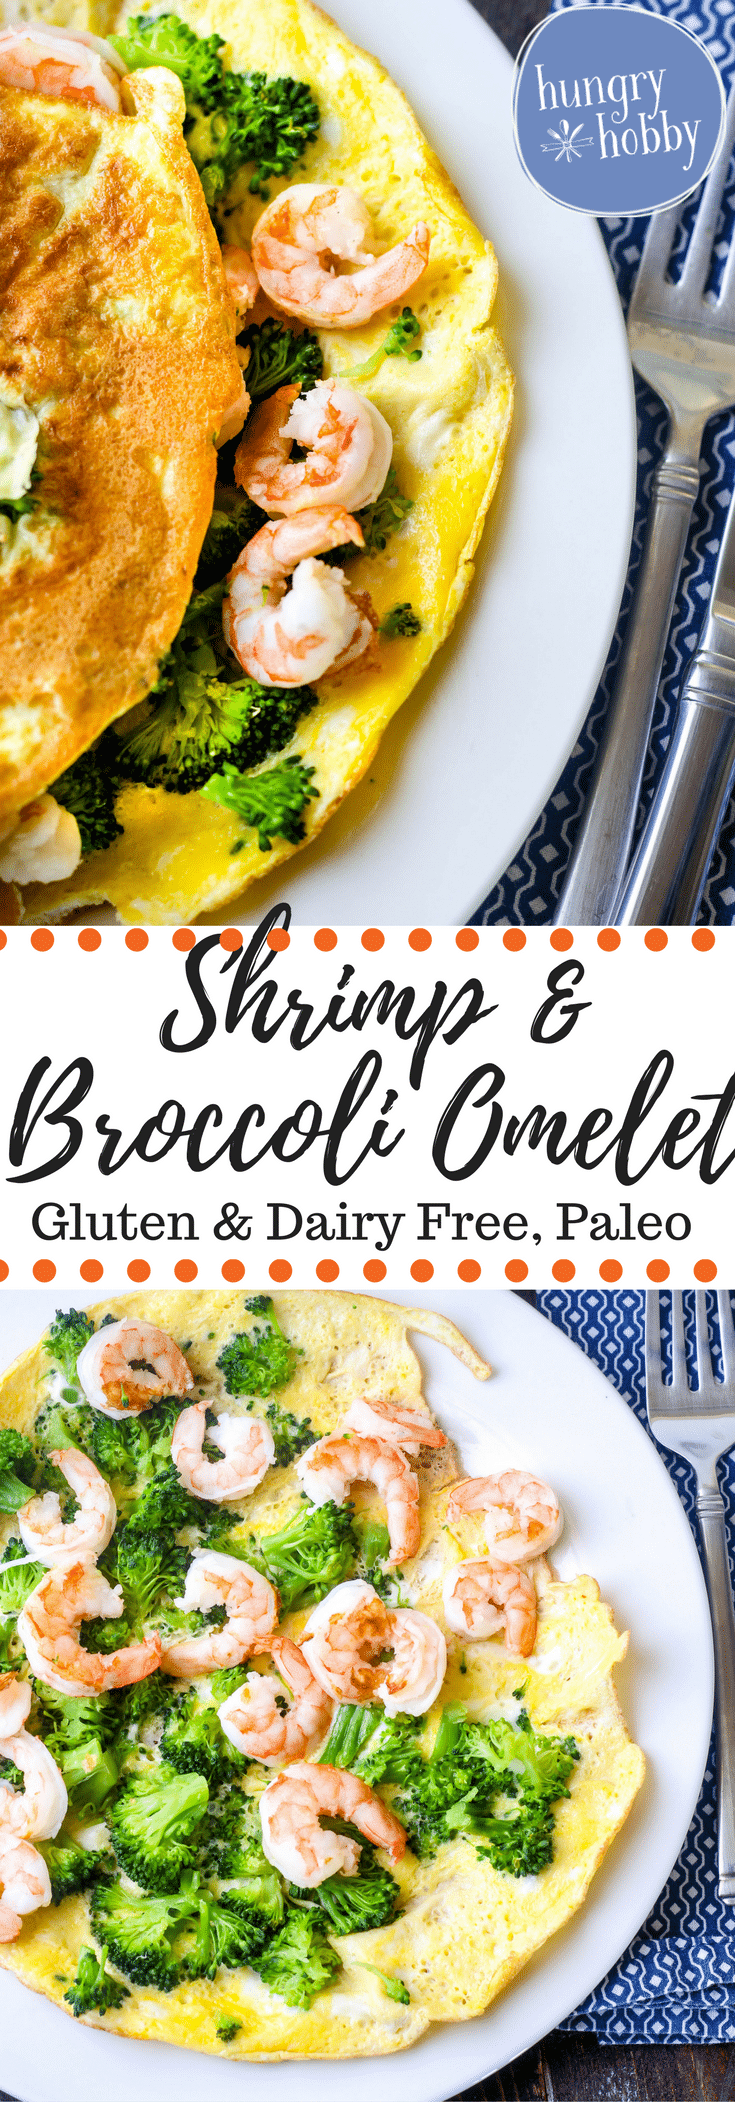 Shrimp & Broccoli Omelet is a super easy protein packed healthy one dish meal perfect for any meal! Gluten & Dairy Free, Paleo Friendly